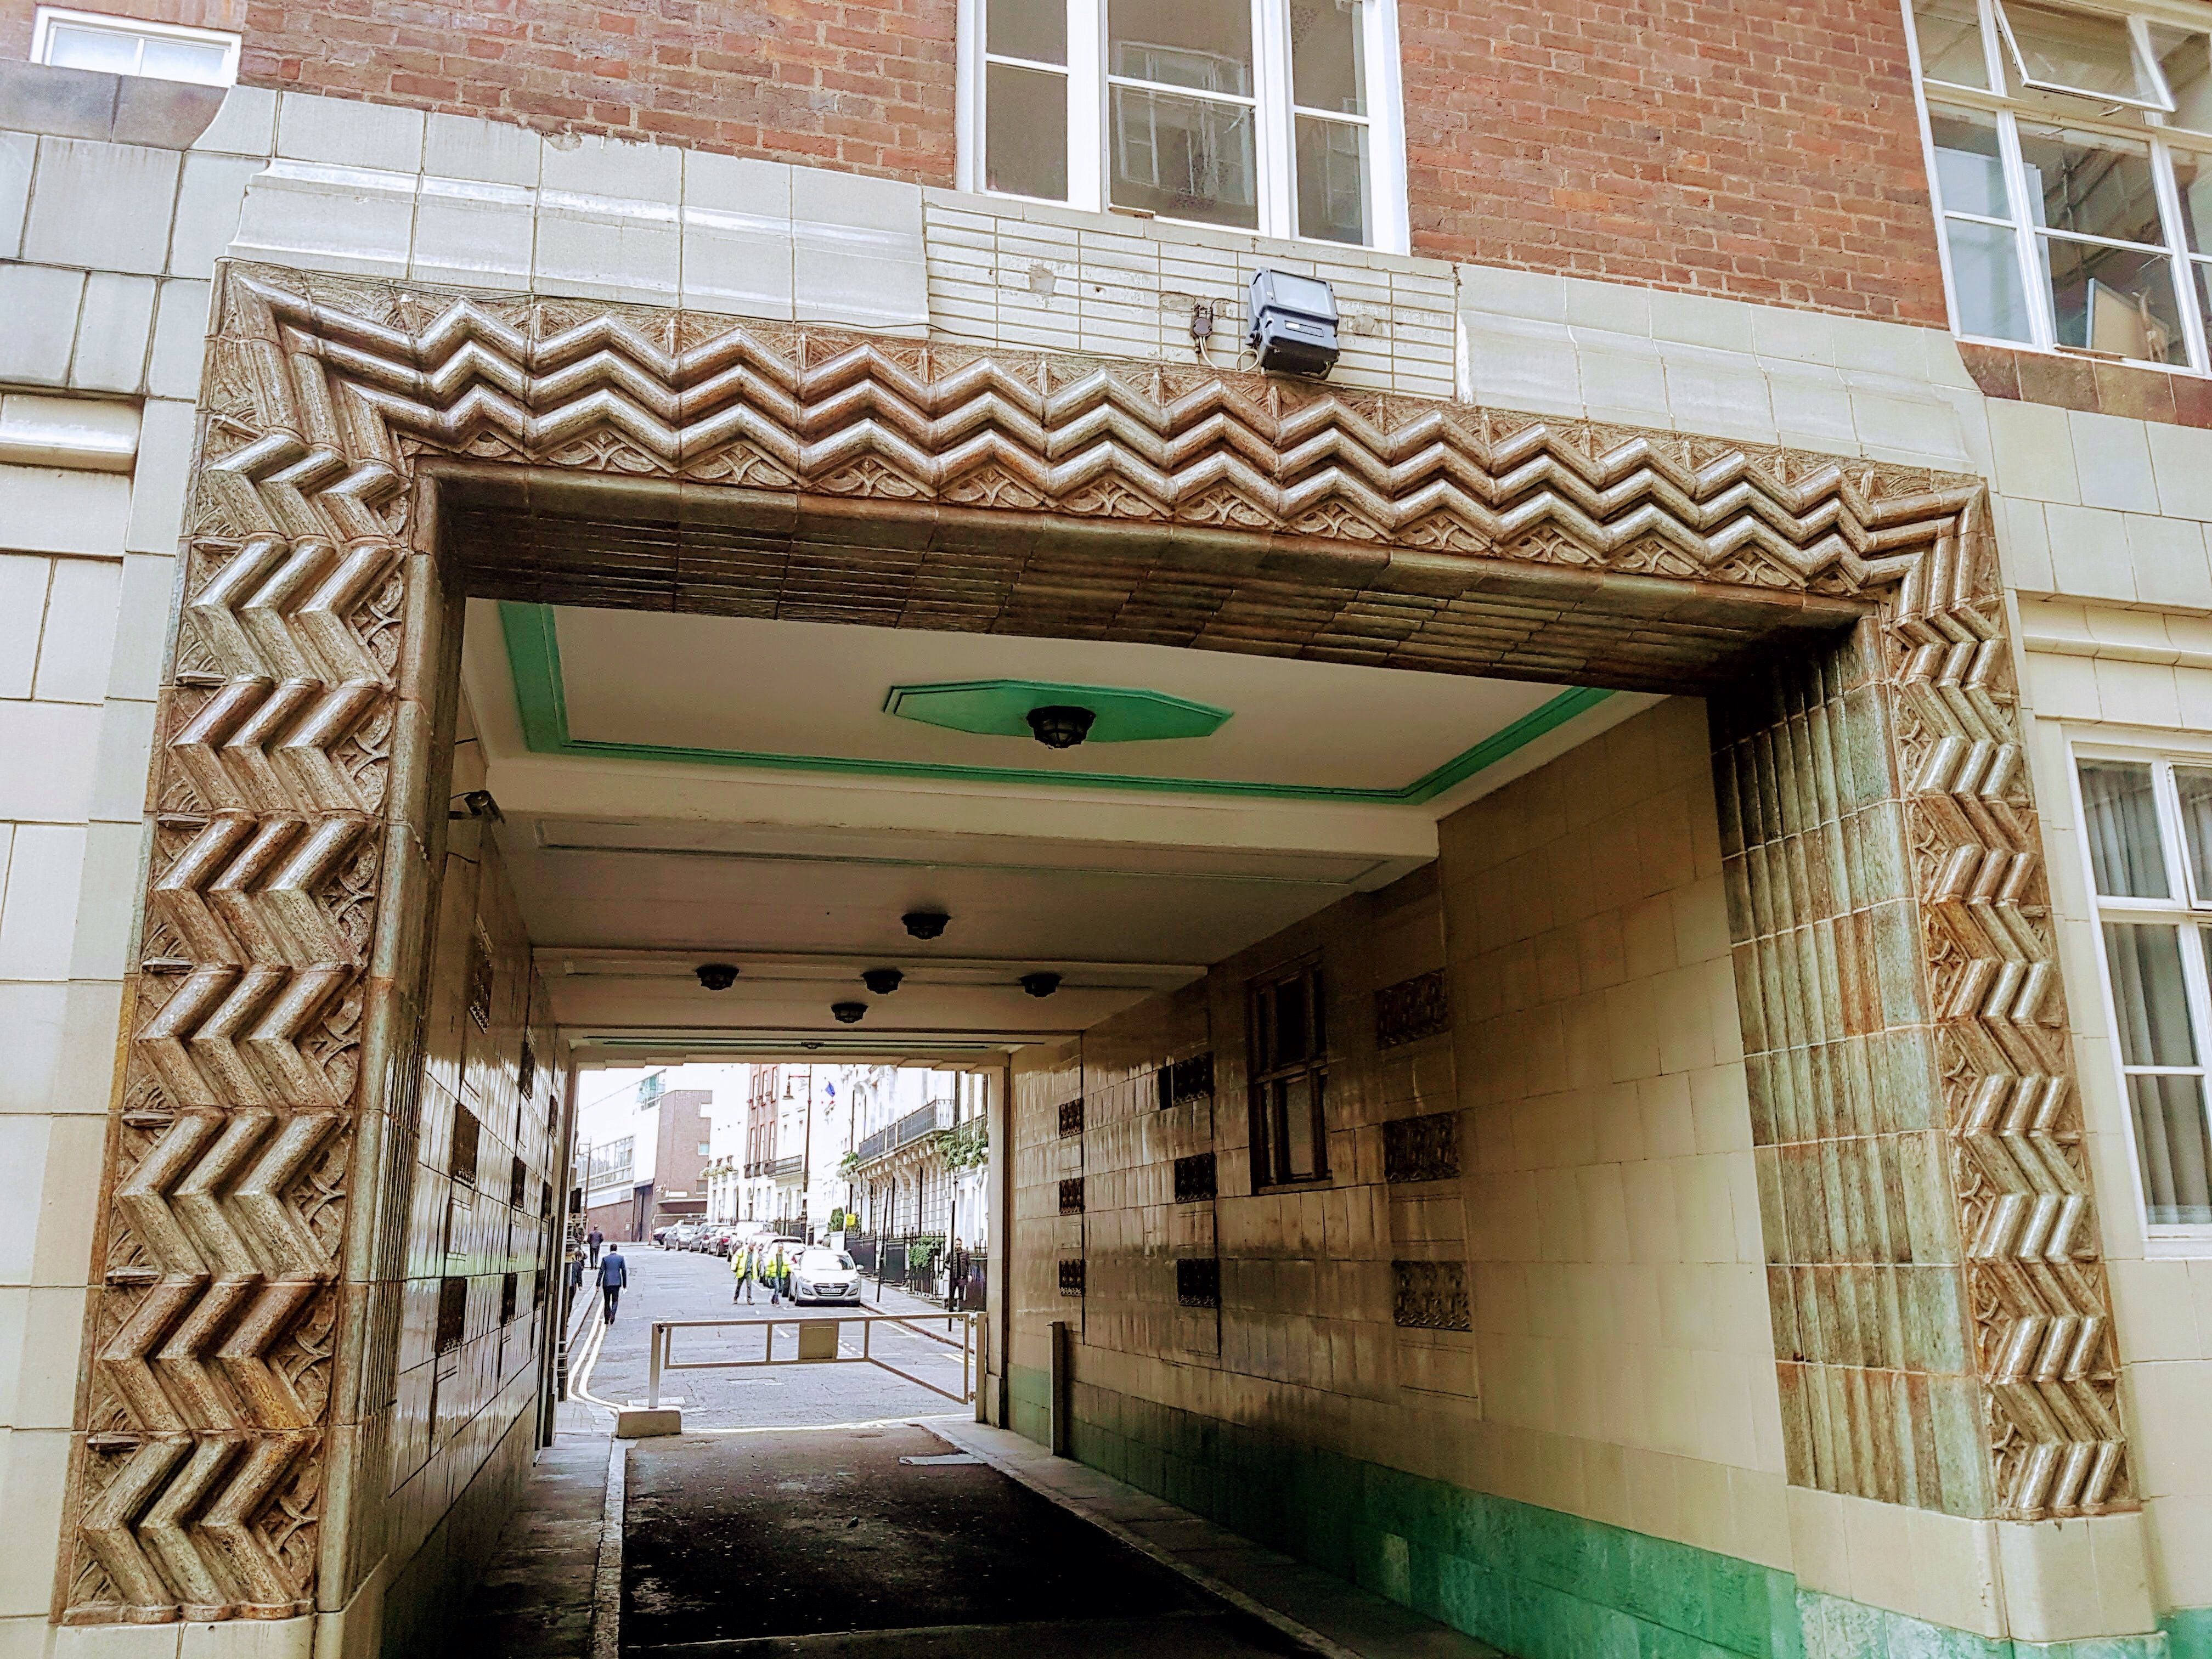 Art Deco detail at Carrington House, Hertford Street in Mayfair, London. This is a residential block of flats and although some of the original features are no more, there are some lovely survivors, such as this through way from the street to the (quite small) residents car park.